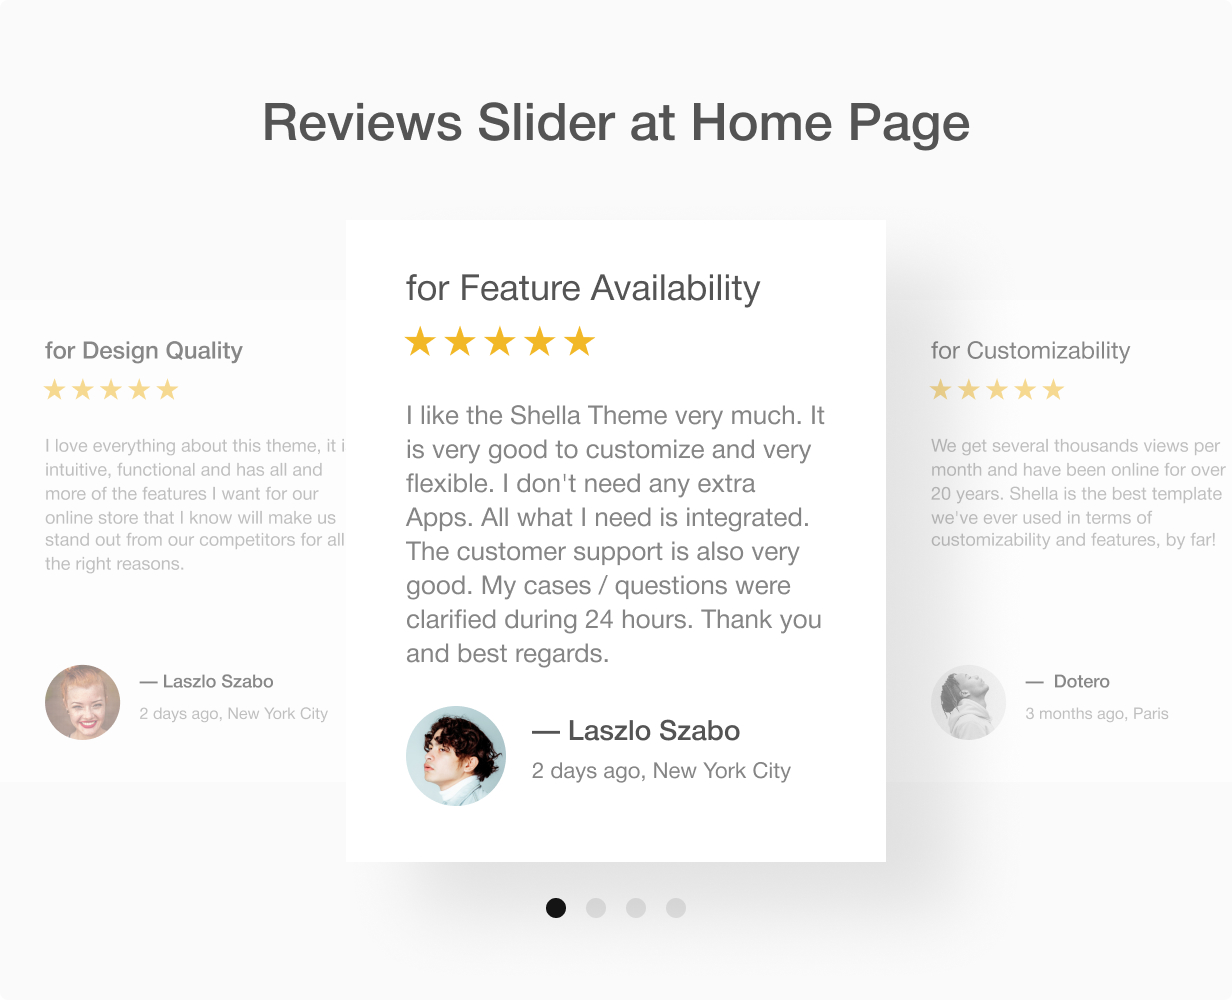 Reviews slider section at home page